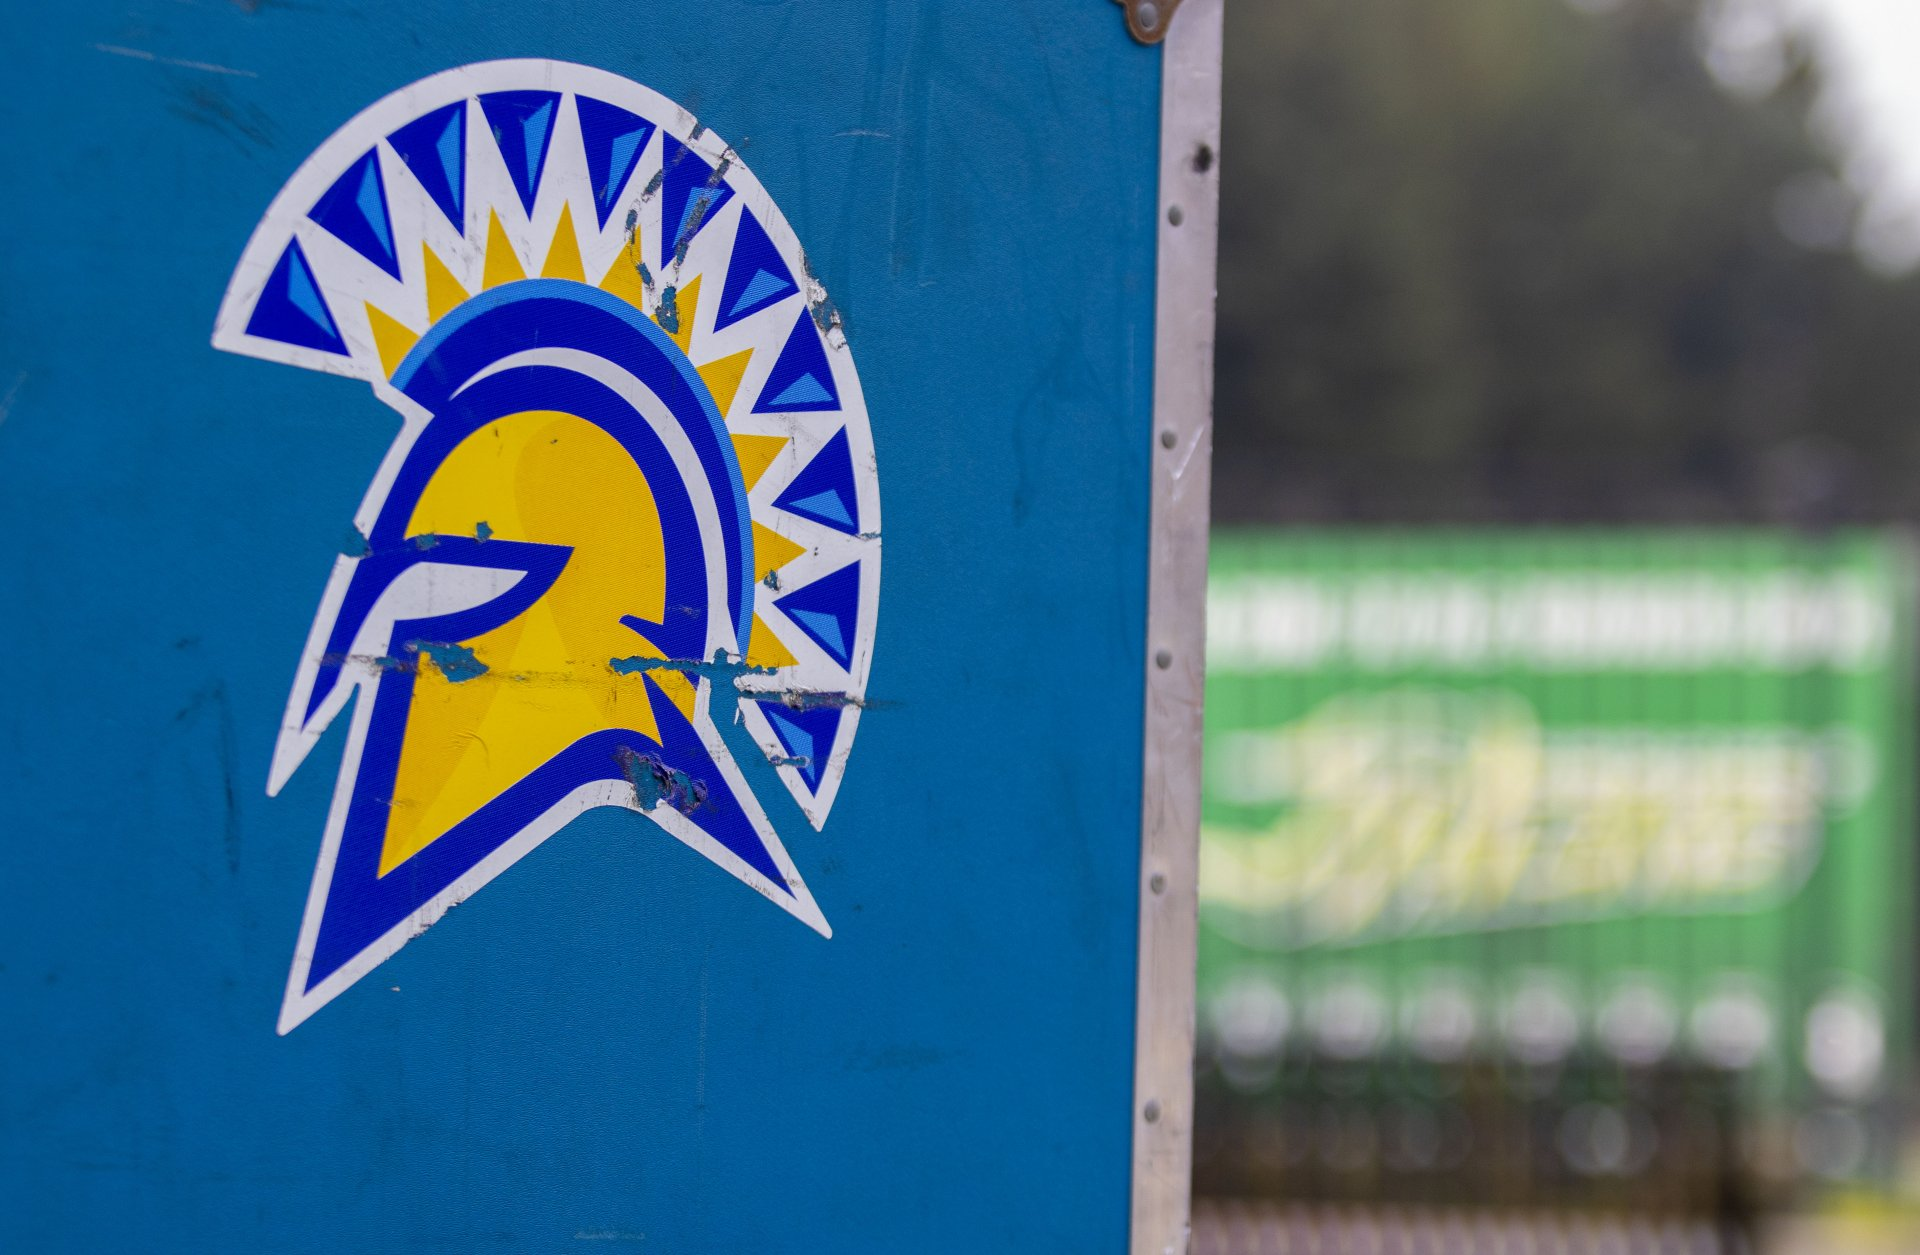 The San Jose State Spartan Logo on a crate of equipment at Redwood Bowl on Oct. 2, 2020 | Photo by Thomas Lal